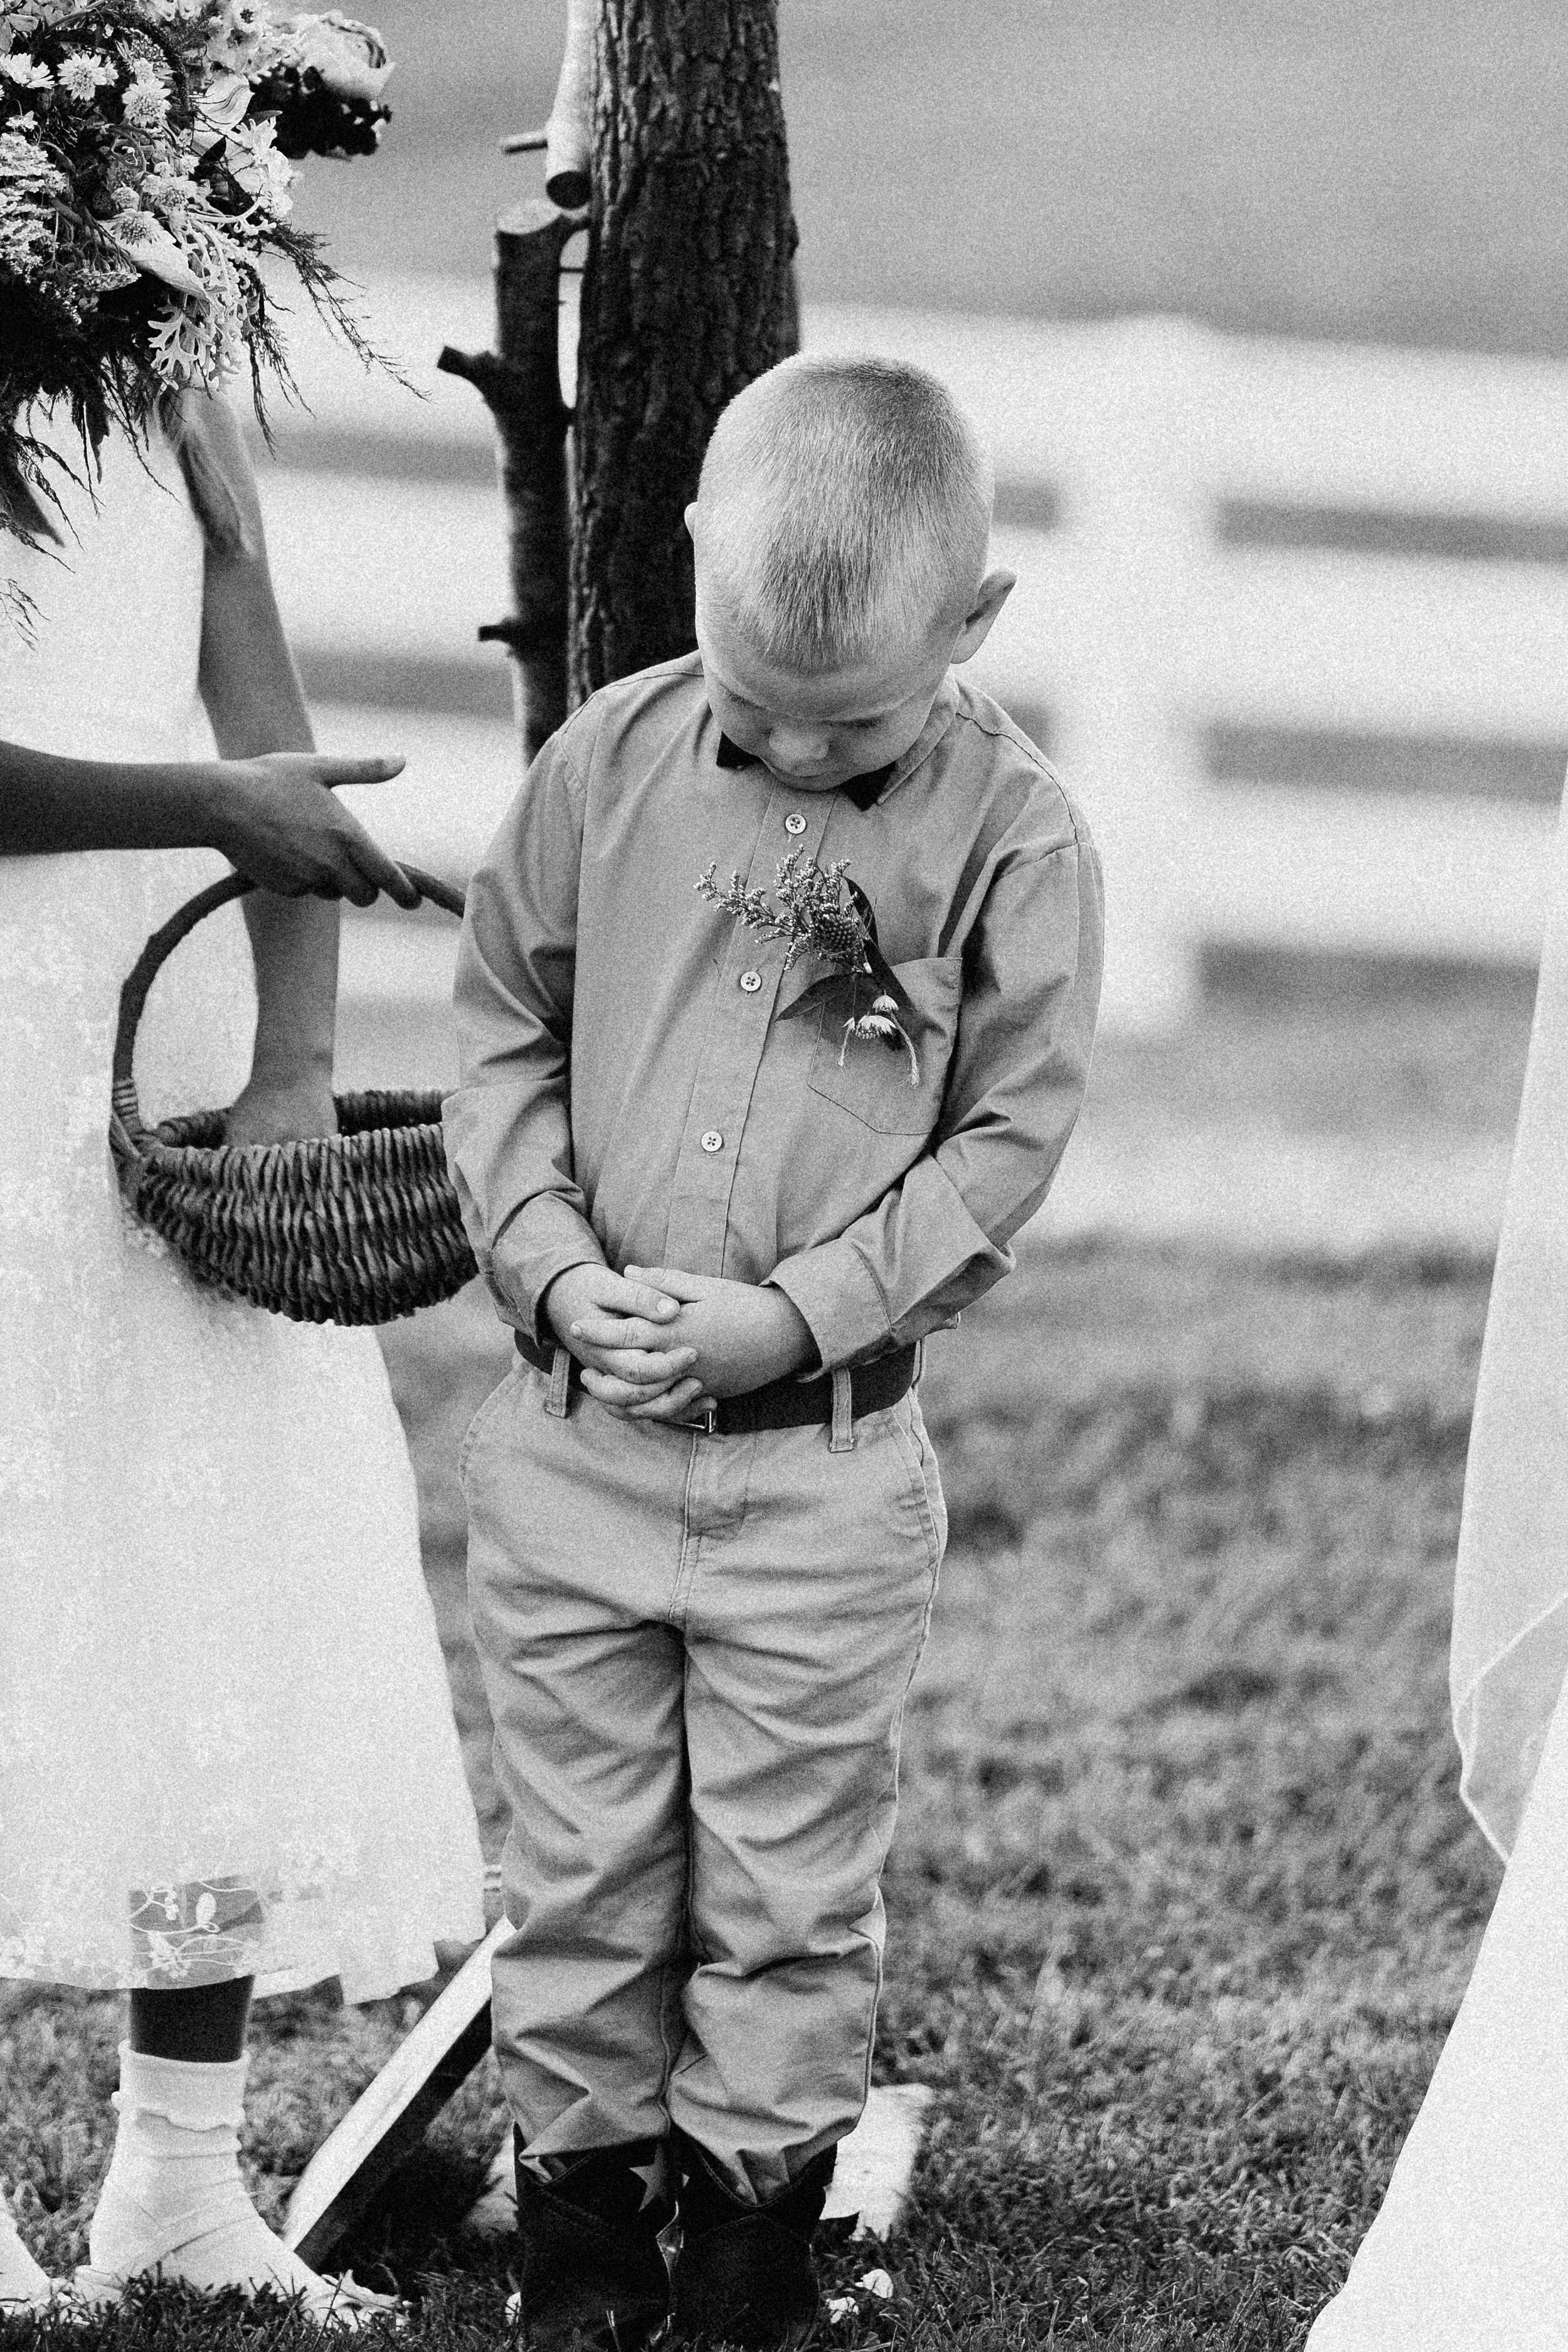 cleveland_georgia_mountain_laurel_farm_natural_classic_timeless_documentary_candid_wedding_emotional_photojournalism_river_west_1690.jpg